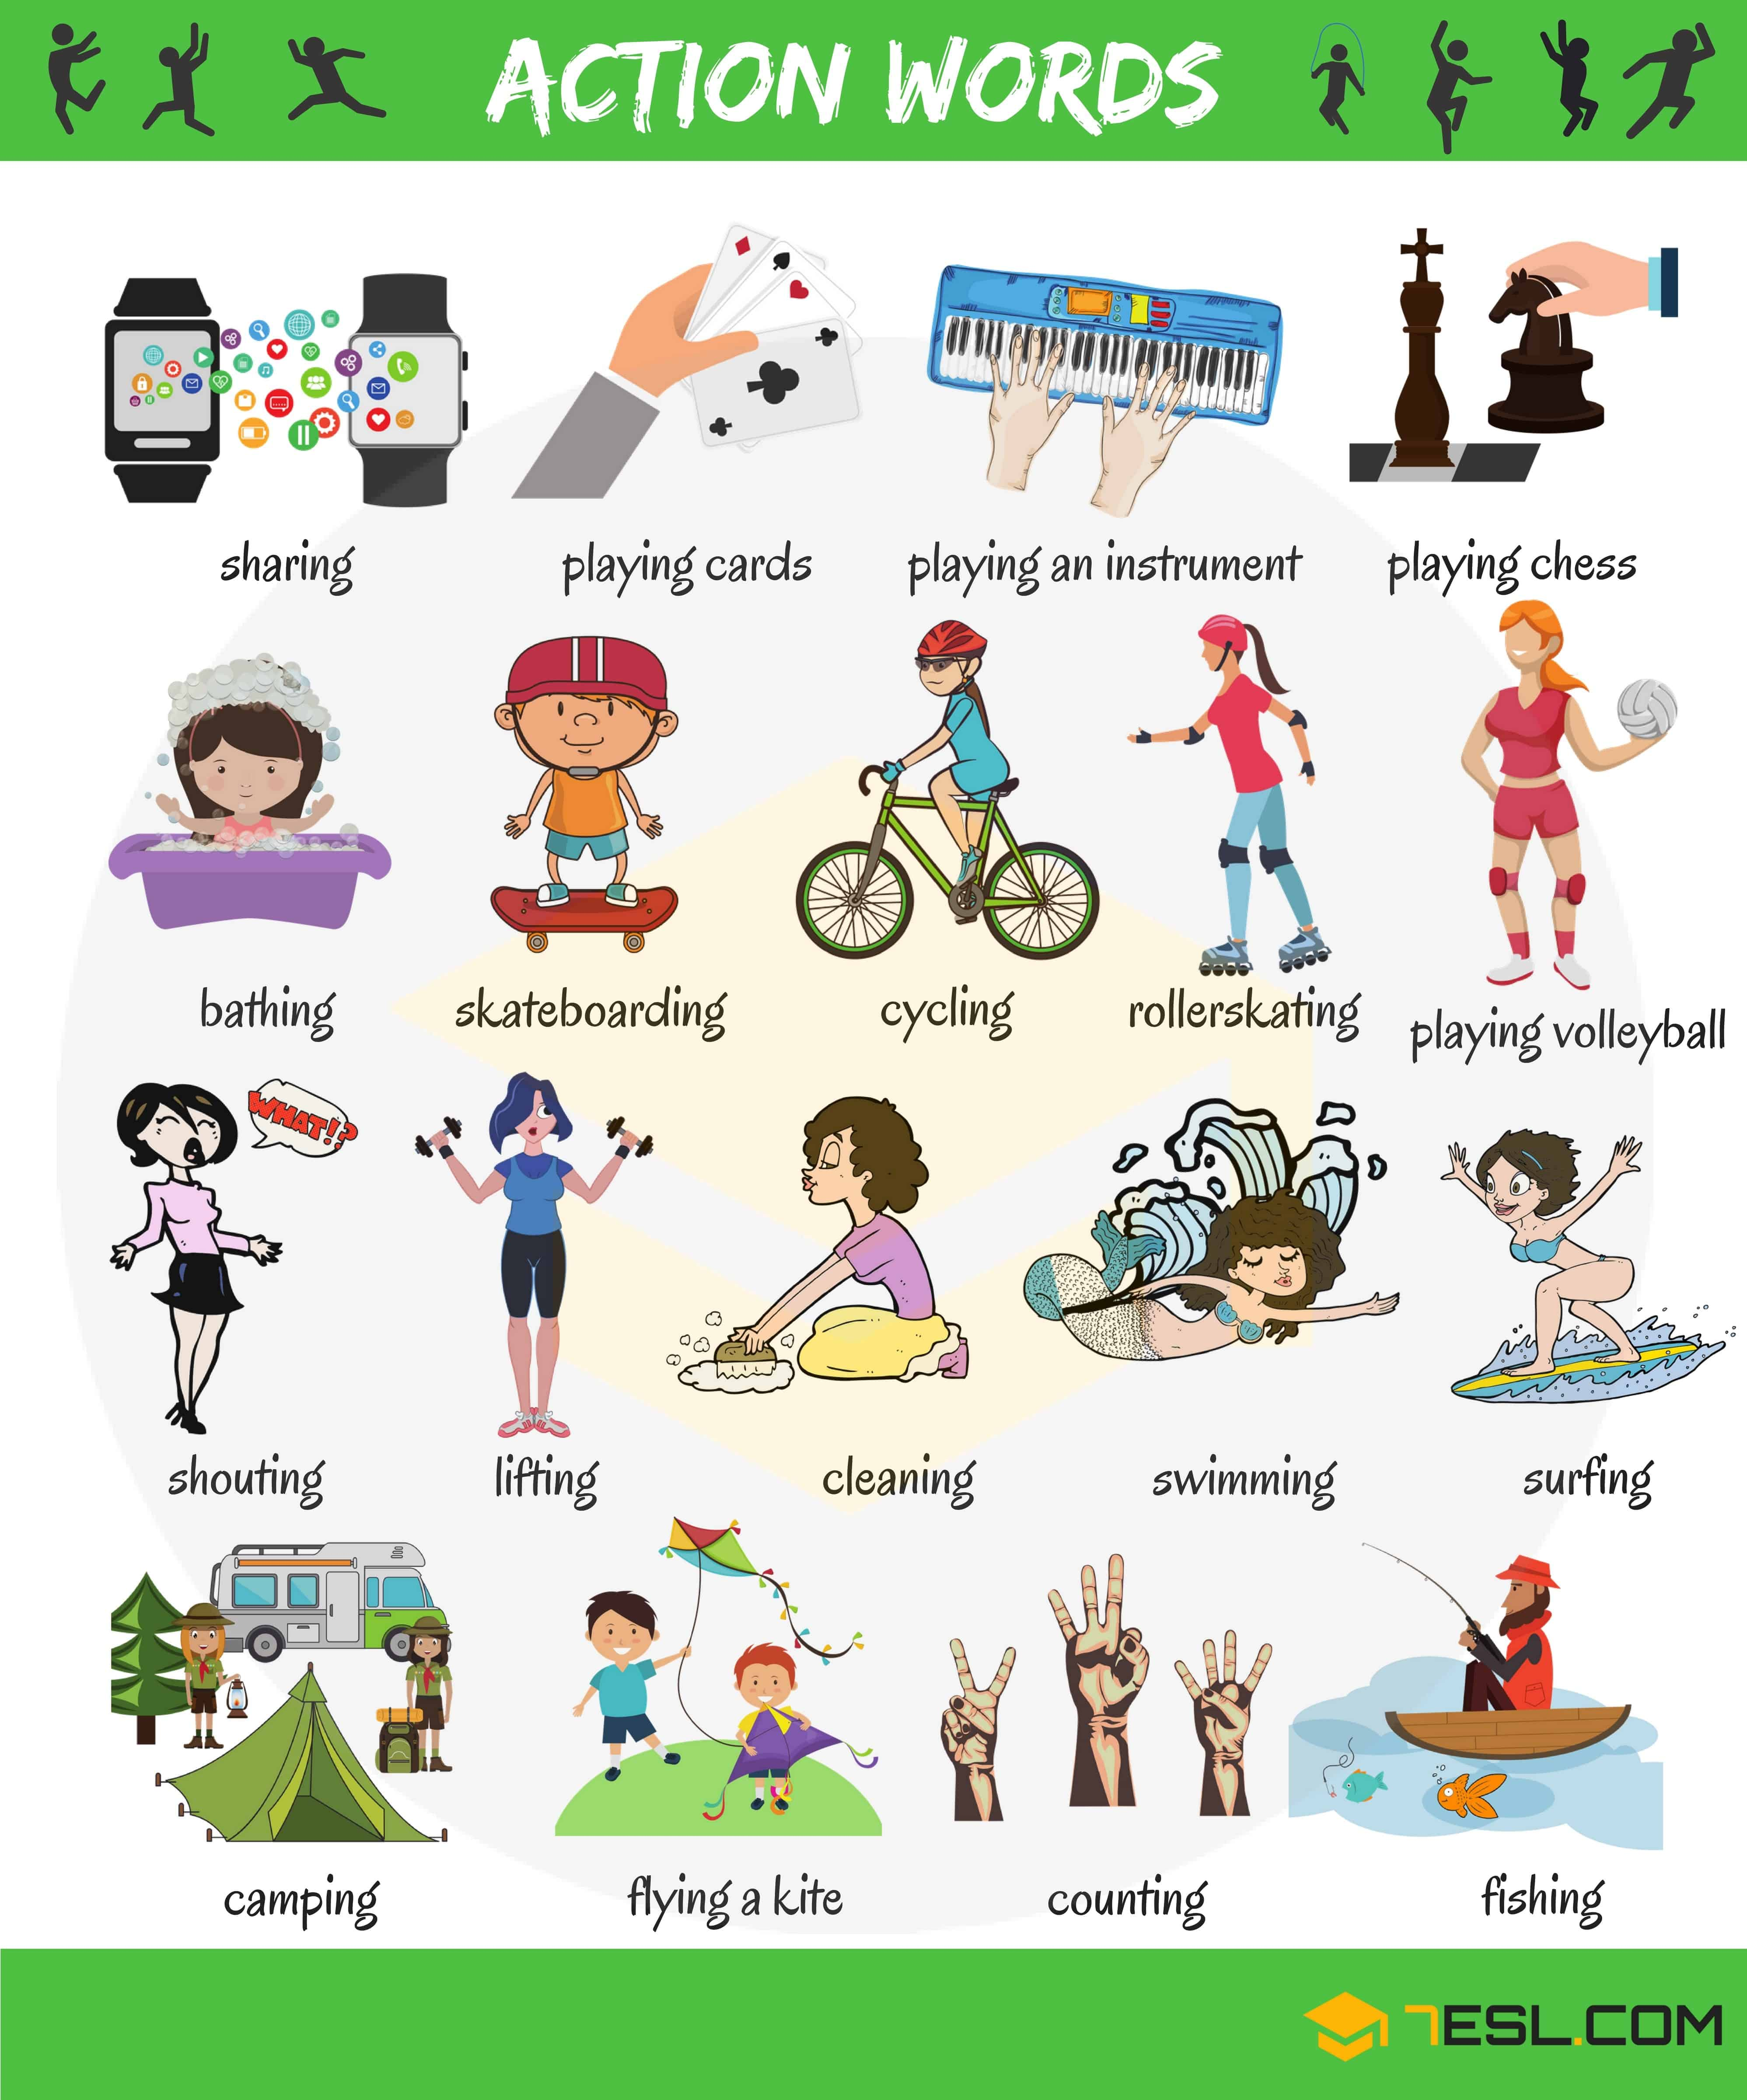 Action Words List Of Common Action Words With Pictures